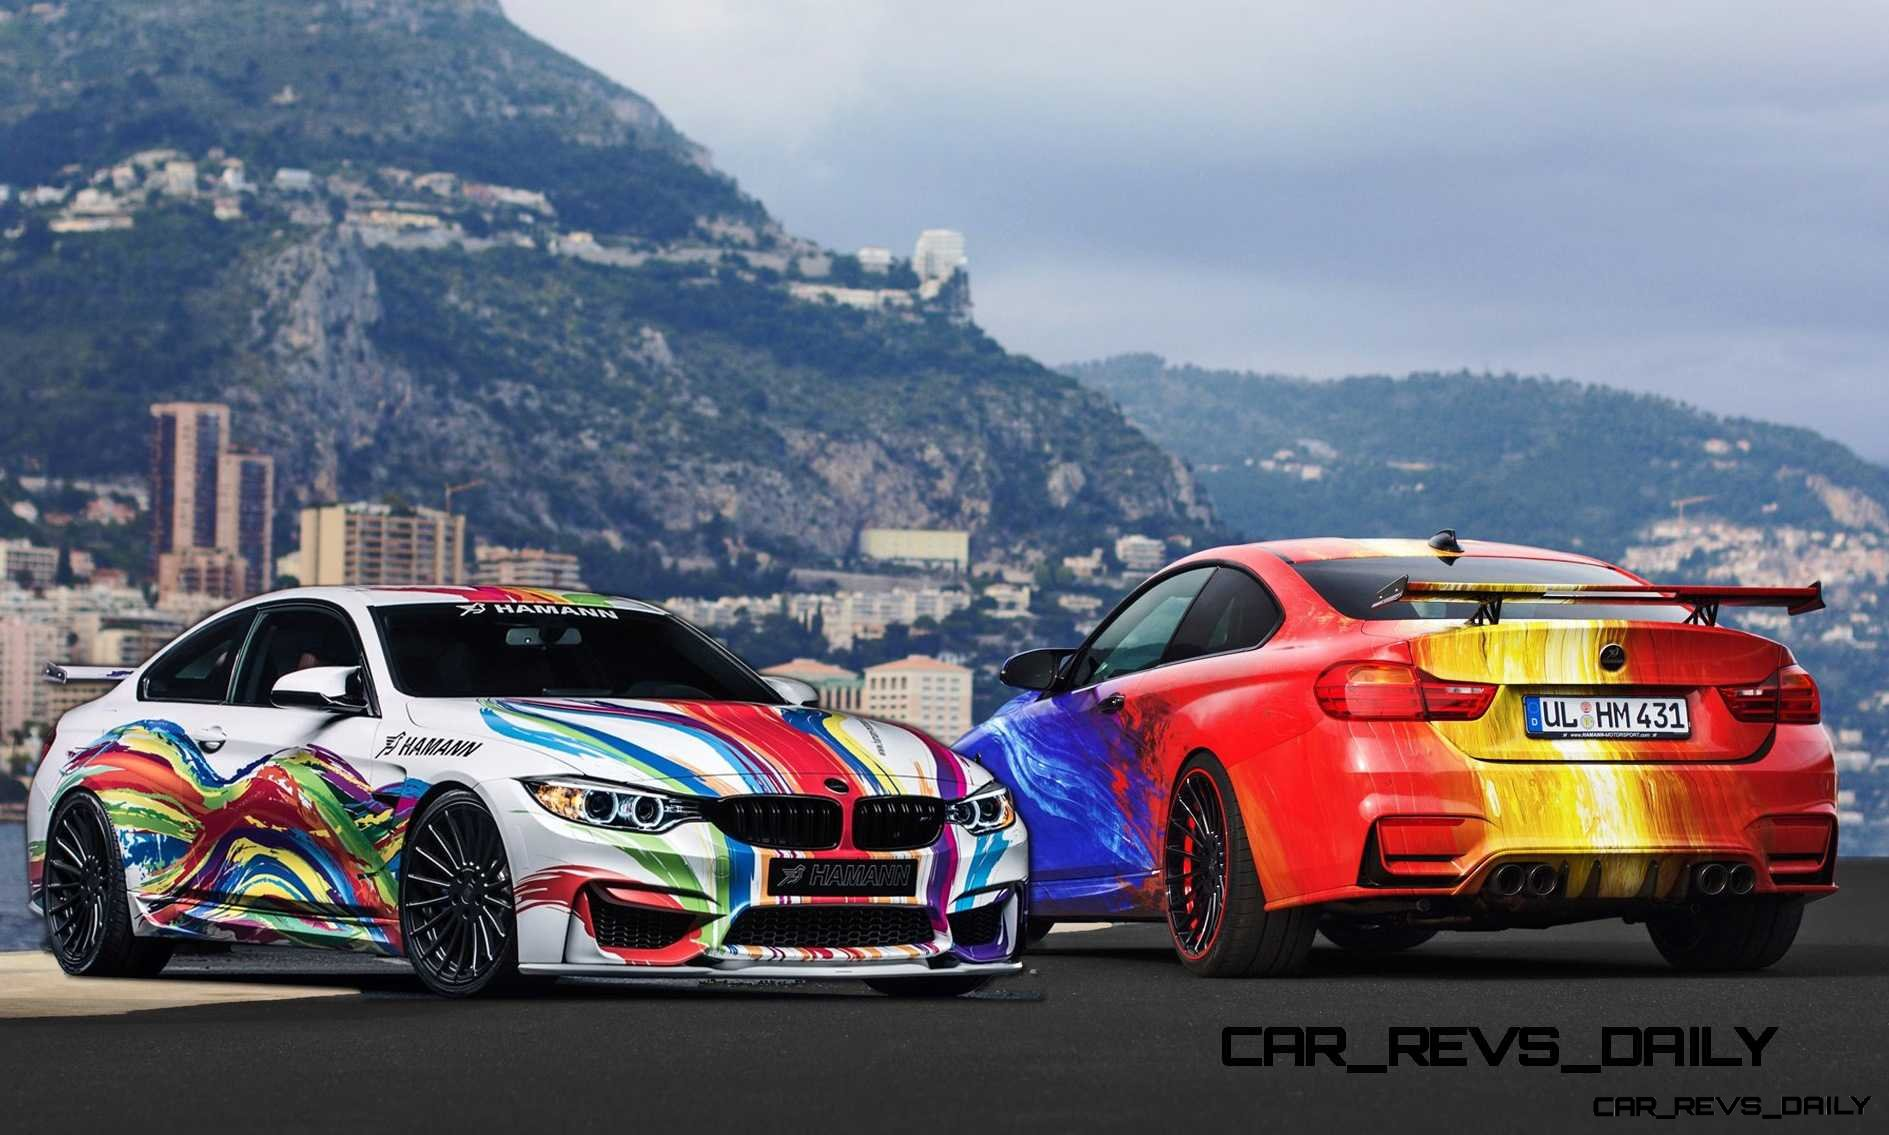 HAMANN 2015 BMW M4 Art Cars 16a